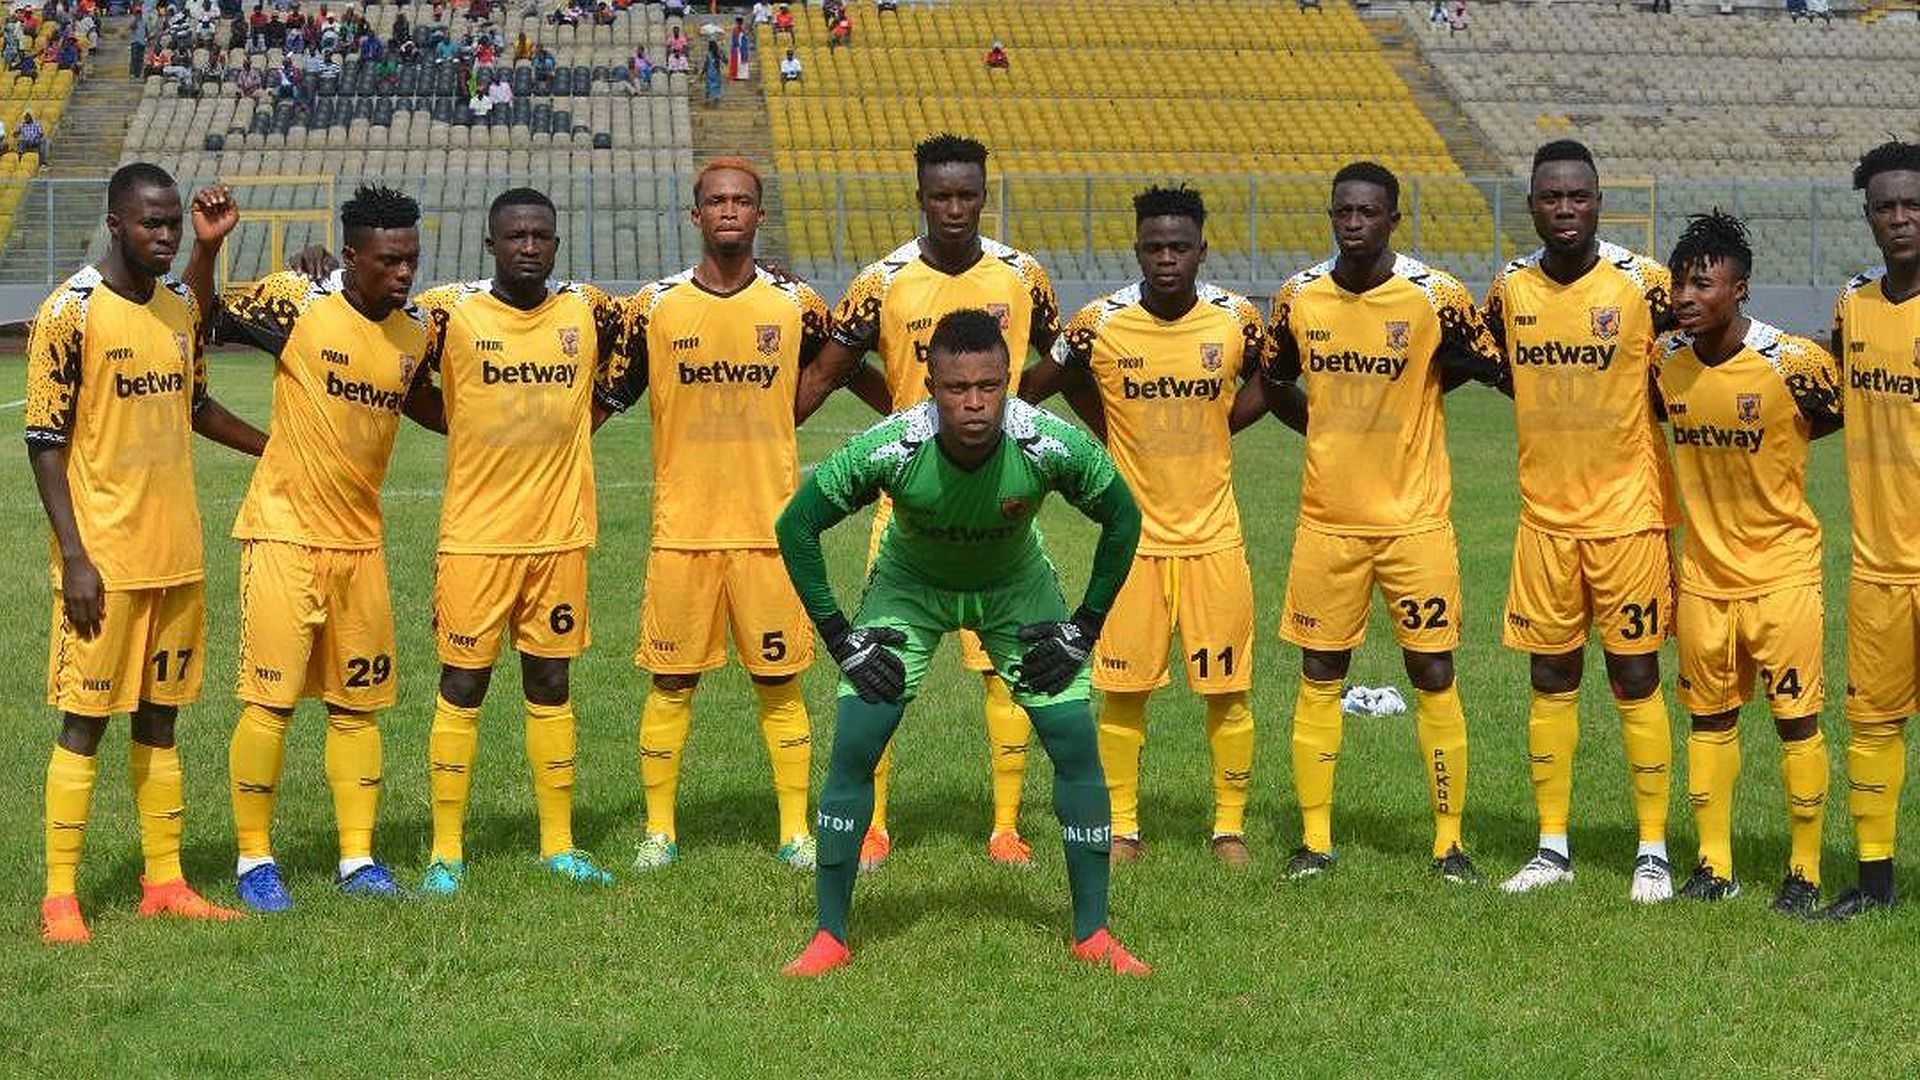 AshantiGold SC to suffer demotion to Division One following preliminary match-fixing investigations